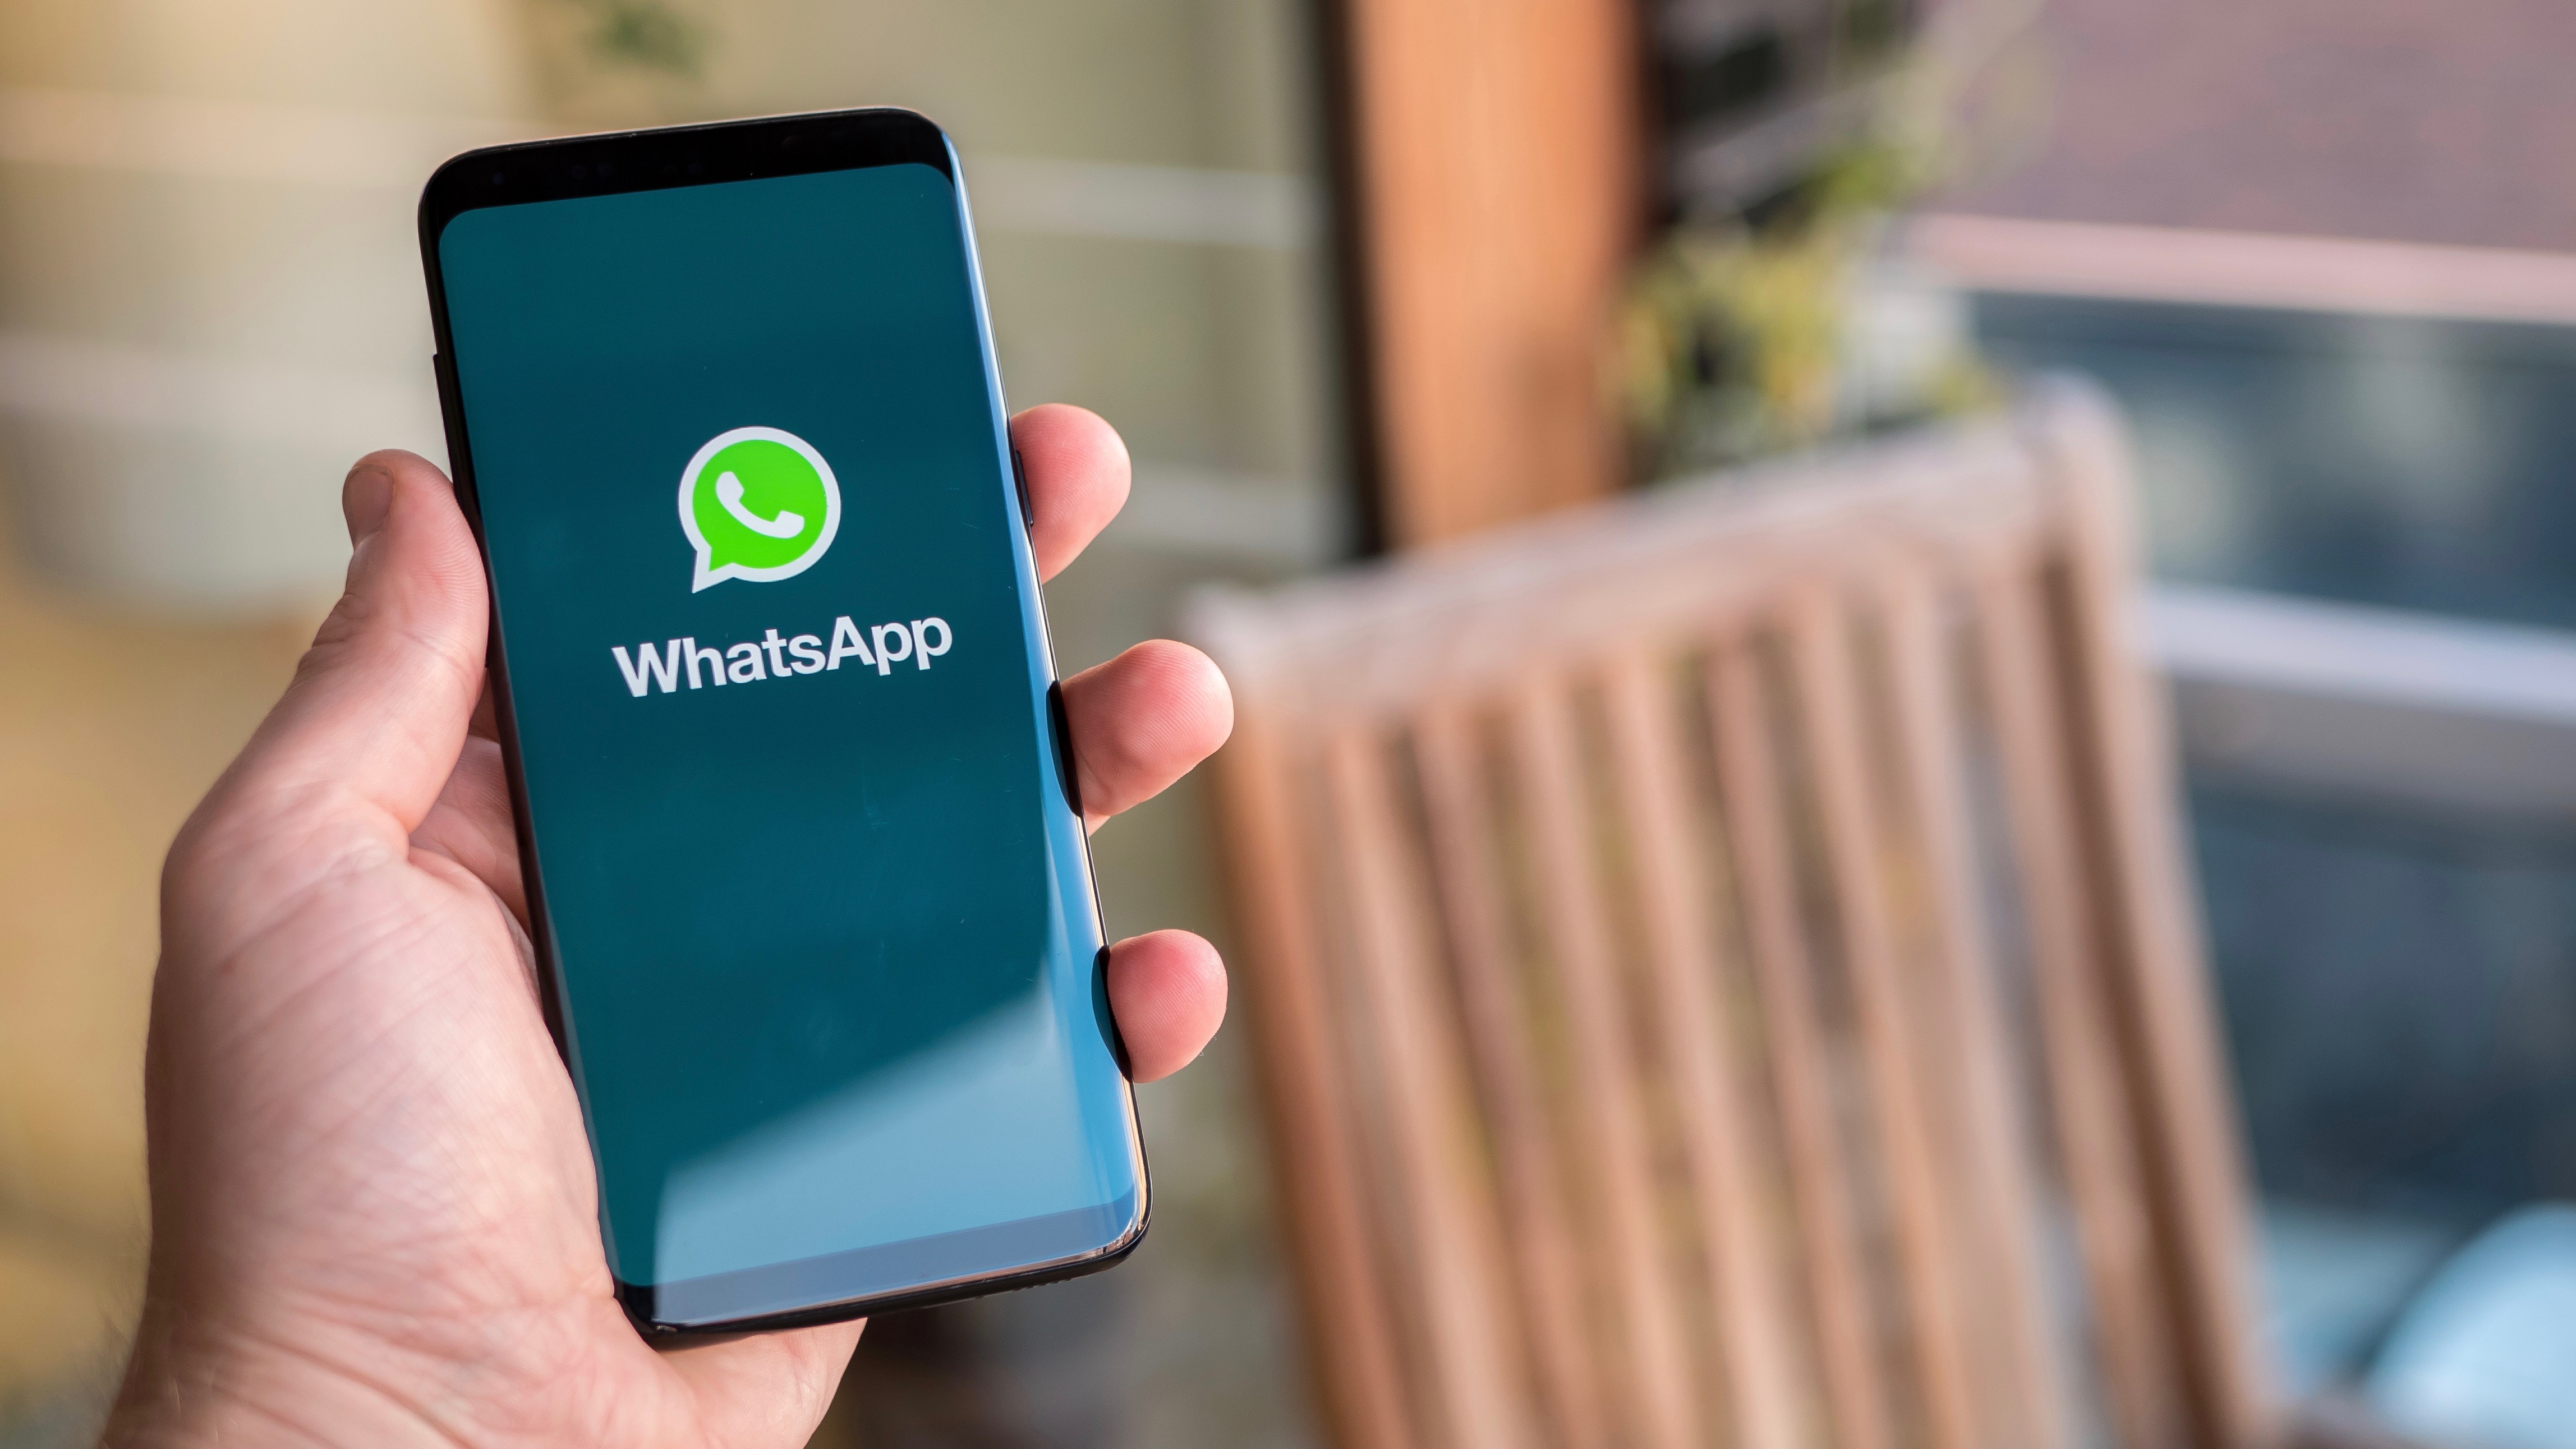 WhatsApp in 2020: dark mode, shopping, ads and everything else to expect